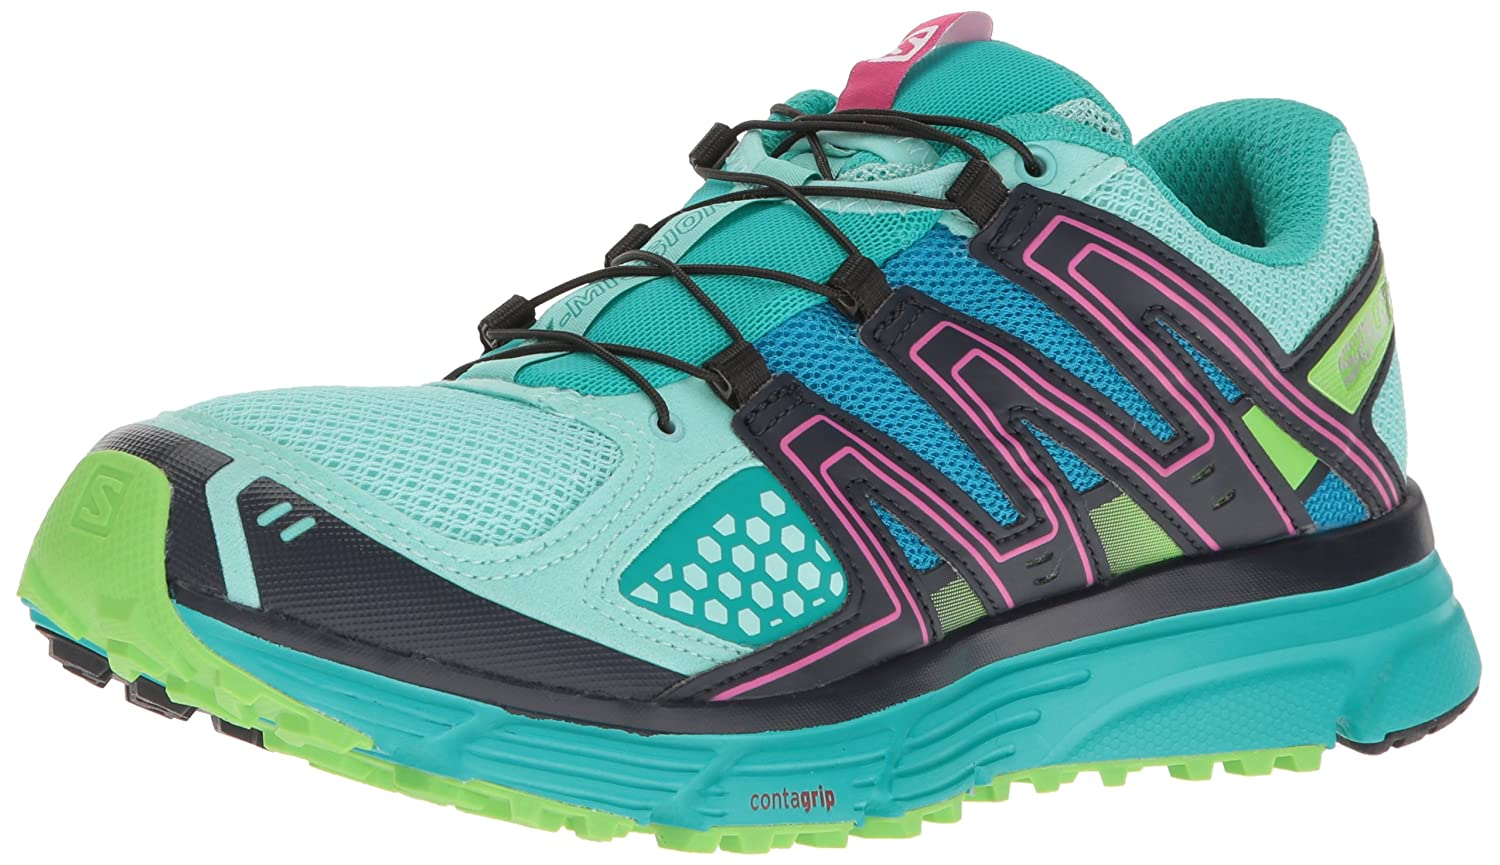 Salomon Women's X-Mission 3 W-w B01HD22AUU 5 B(M) US|Aruba Blue/Navy Blazer/Green Flash